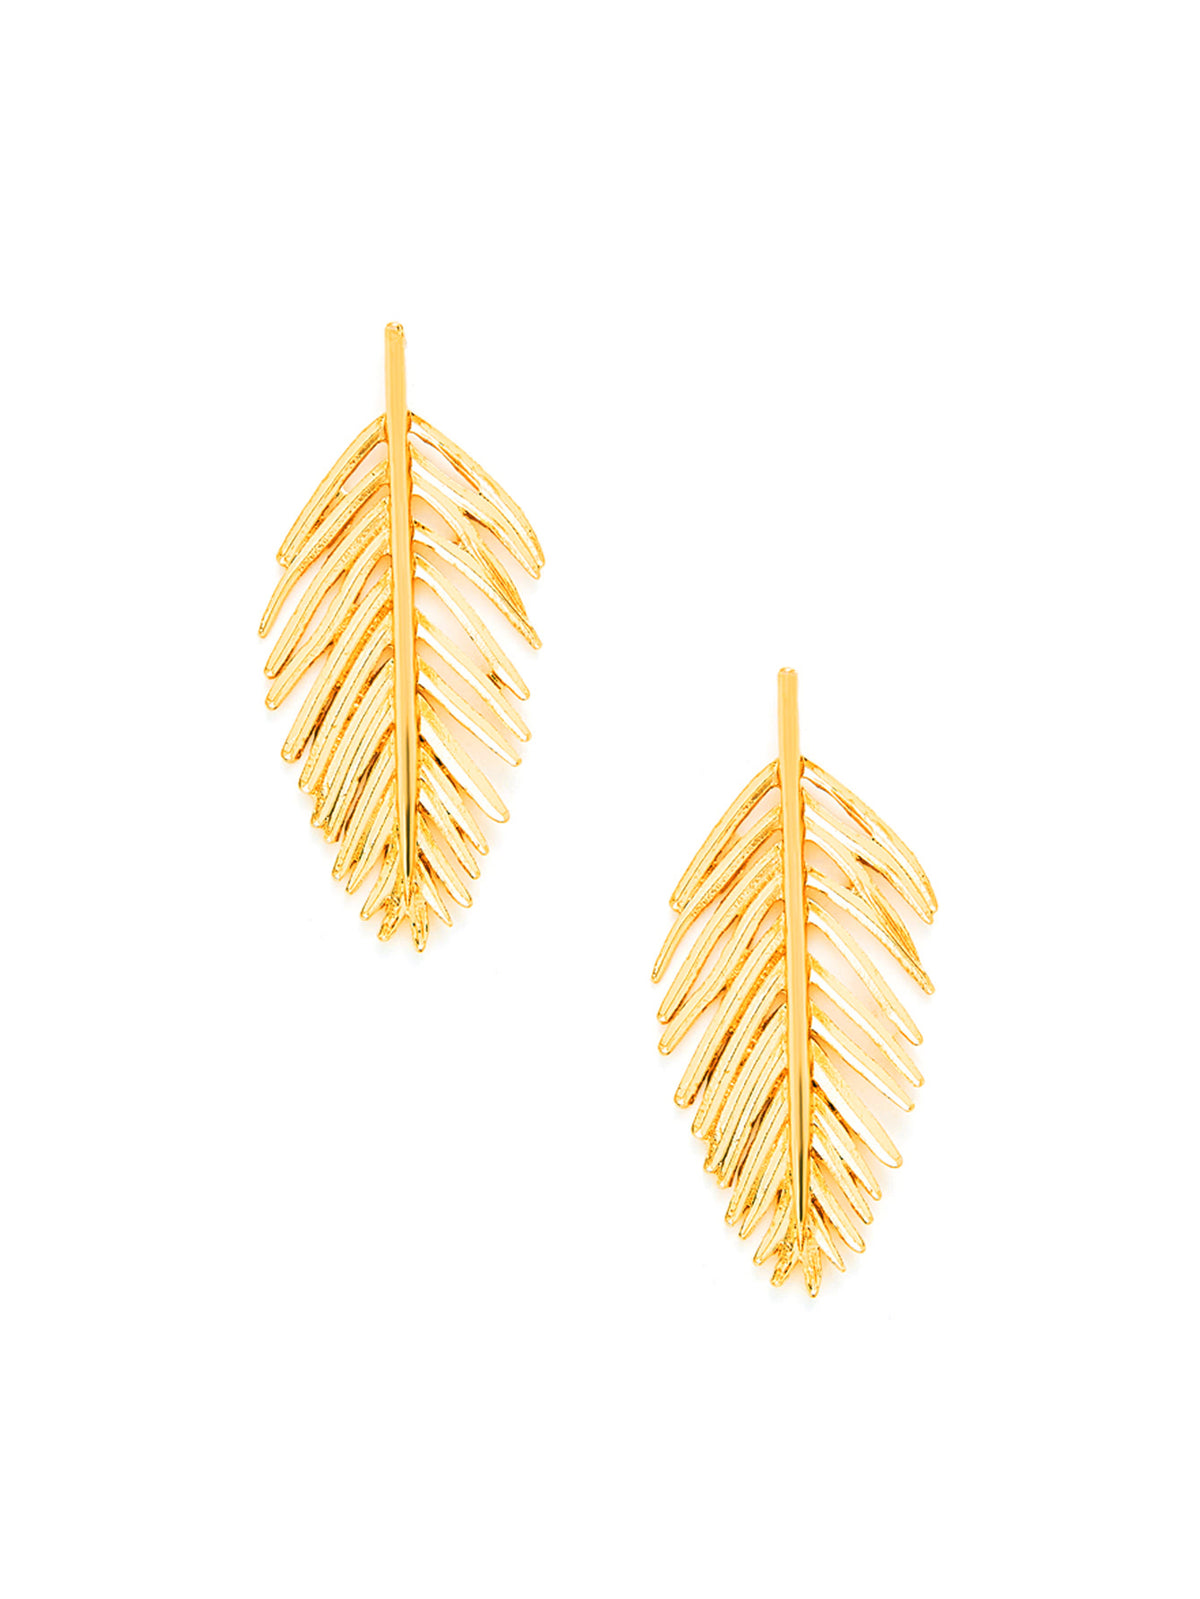 Leaf Design Stud Earrings